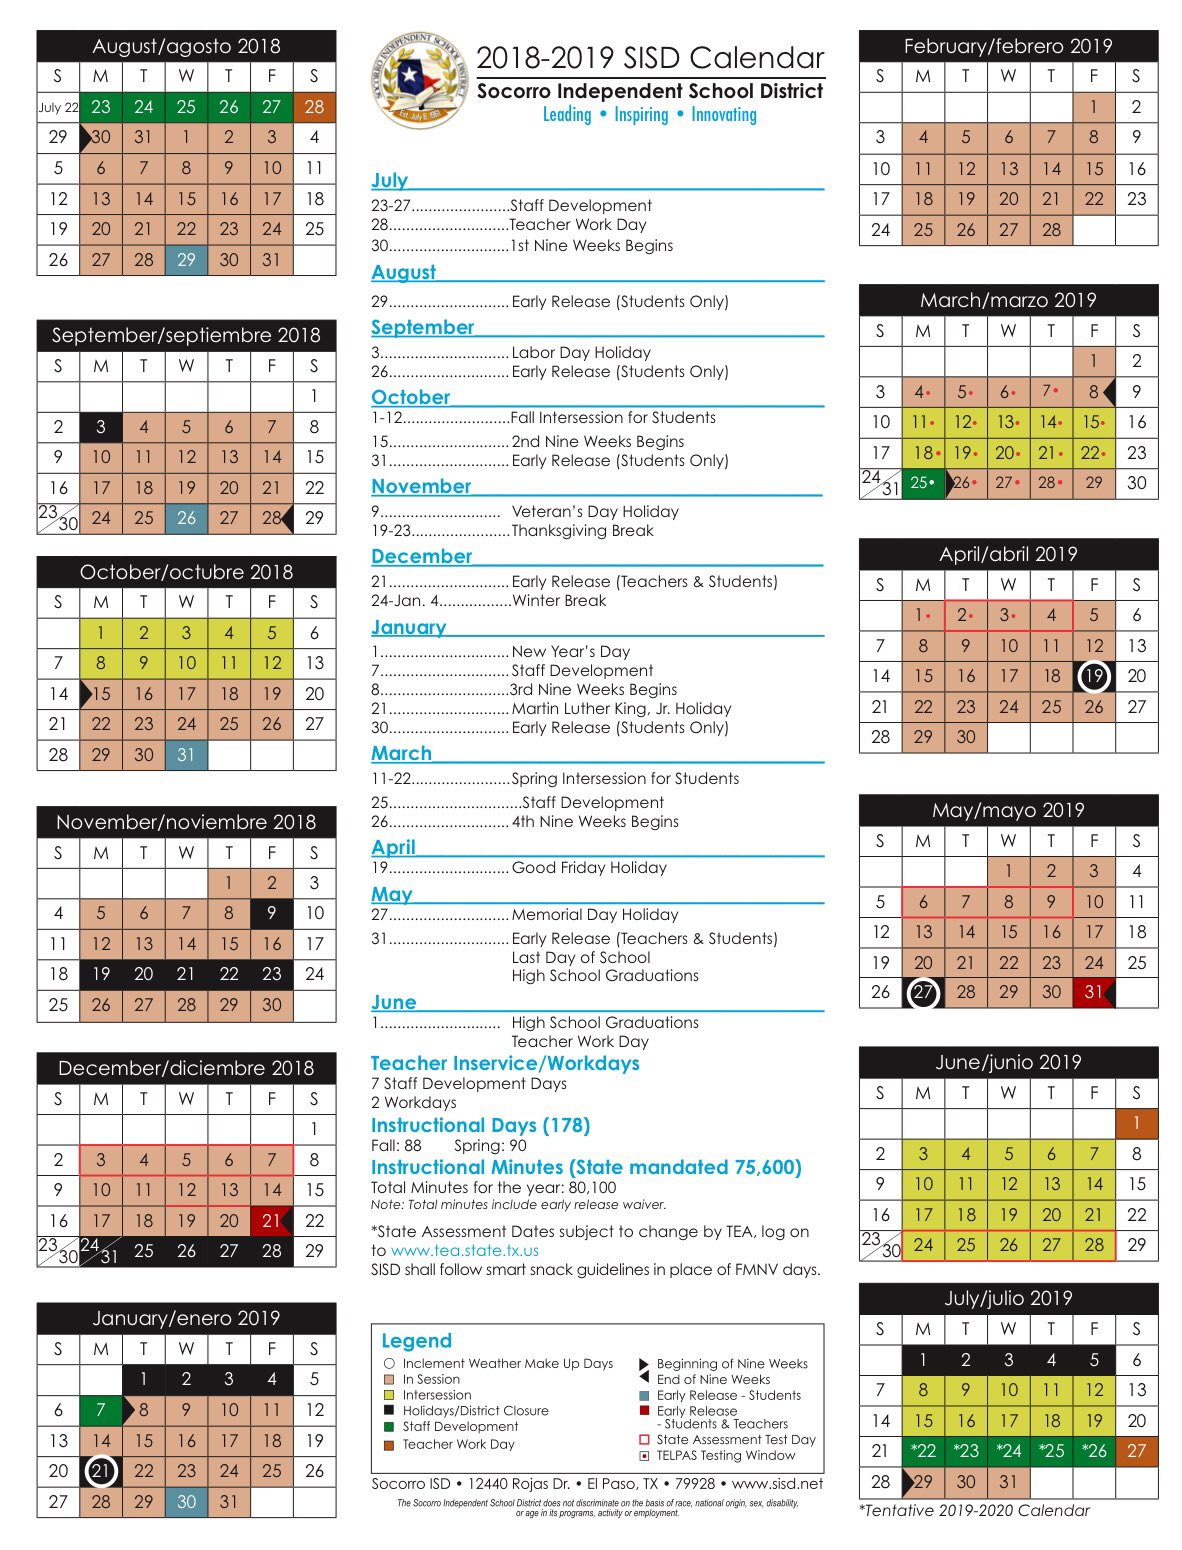 Sisd Calendar 2022.Socorro Isd On Twitter The Sisd Board Of Trustees Approved The 2018 2019 And 2019 2020 Student Calendars To Download A Copy Of The Calendars Visit Https T Co Cq3x1rfe2e Https T Co Ytbwvfuedr